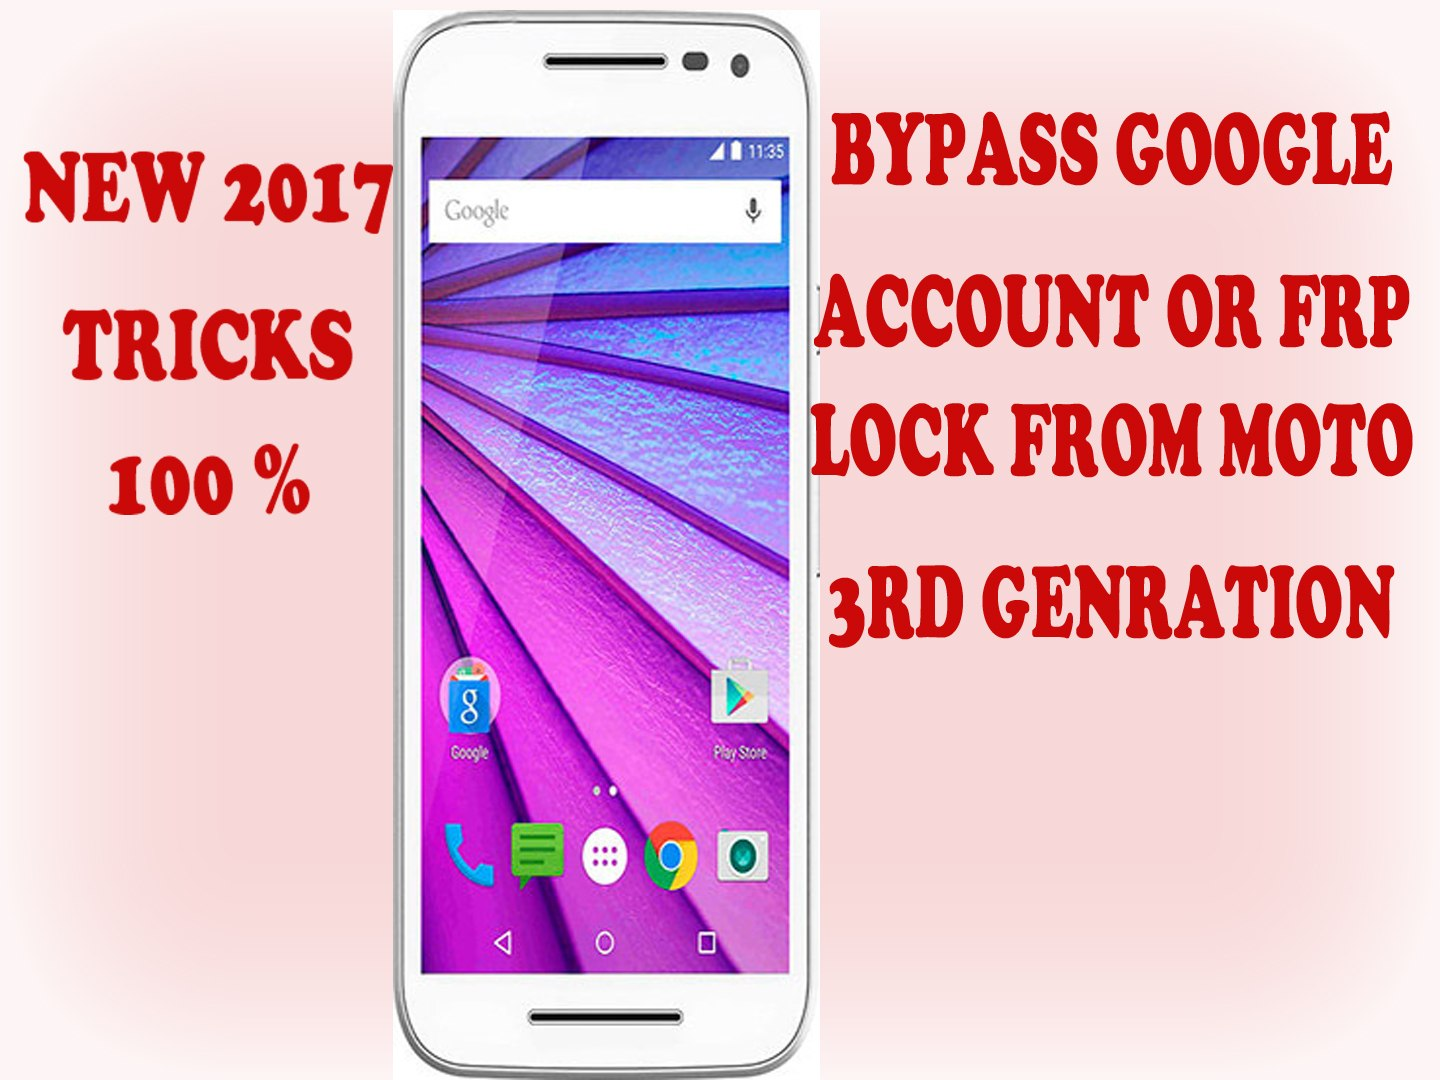 remove frp lock moto g3 6 0 1 remove google account moto g3 bypass frp lock  apk - Vídeo Dailymotion